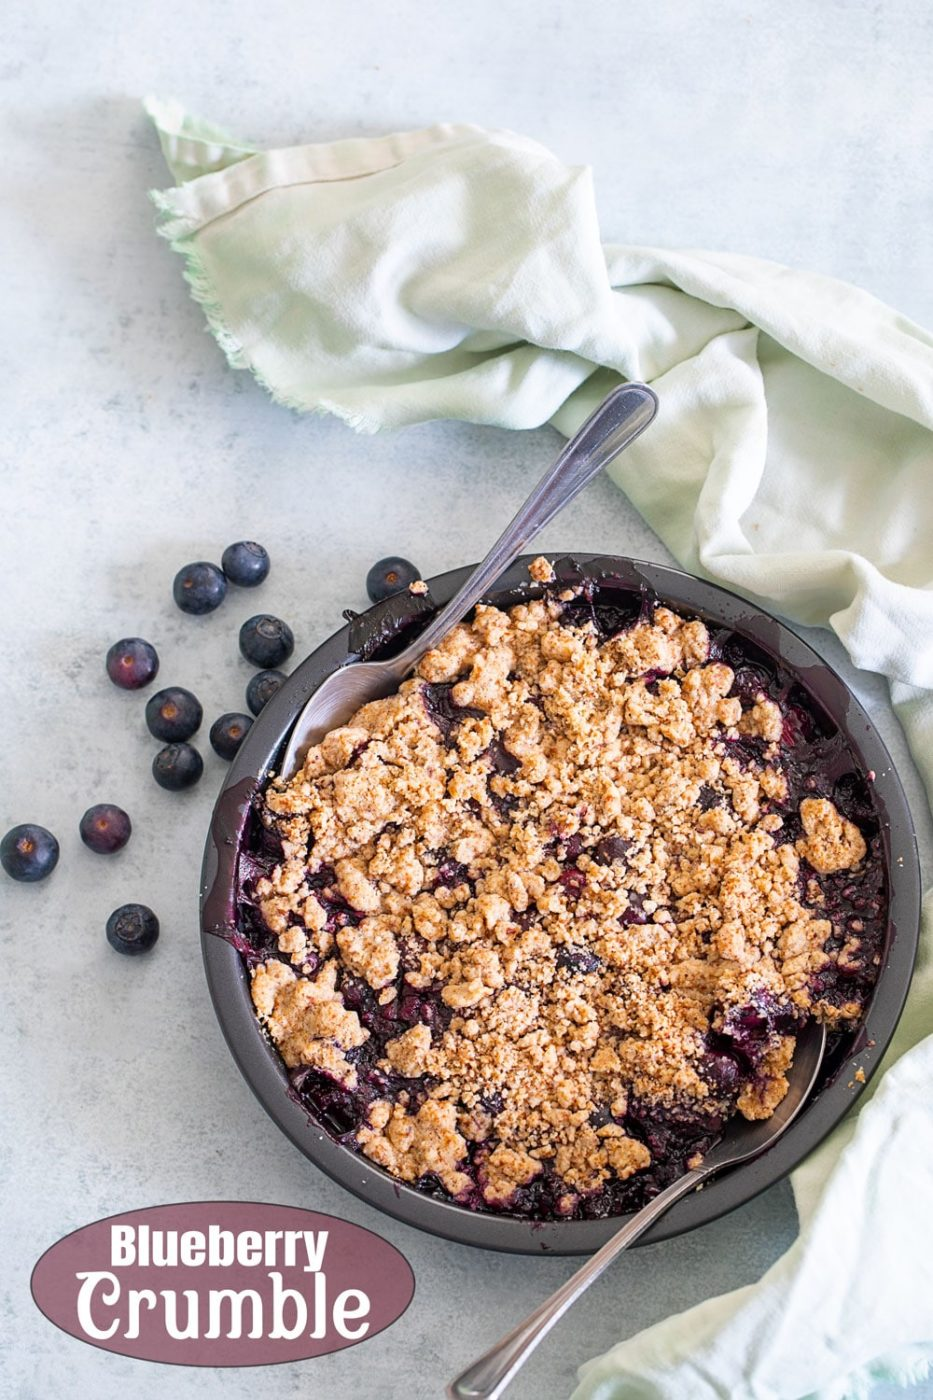 overhead view of a blueberry pie crumble in a pan with a spoon in it. On the side, there are fresh blueberries and light green cloth on the side